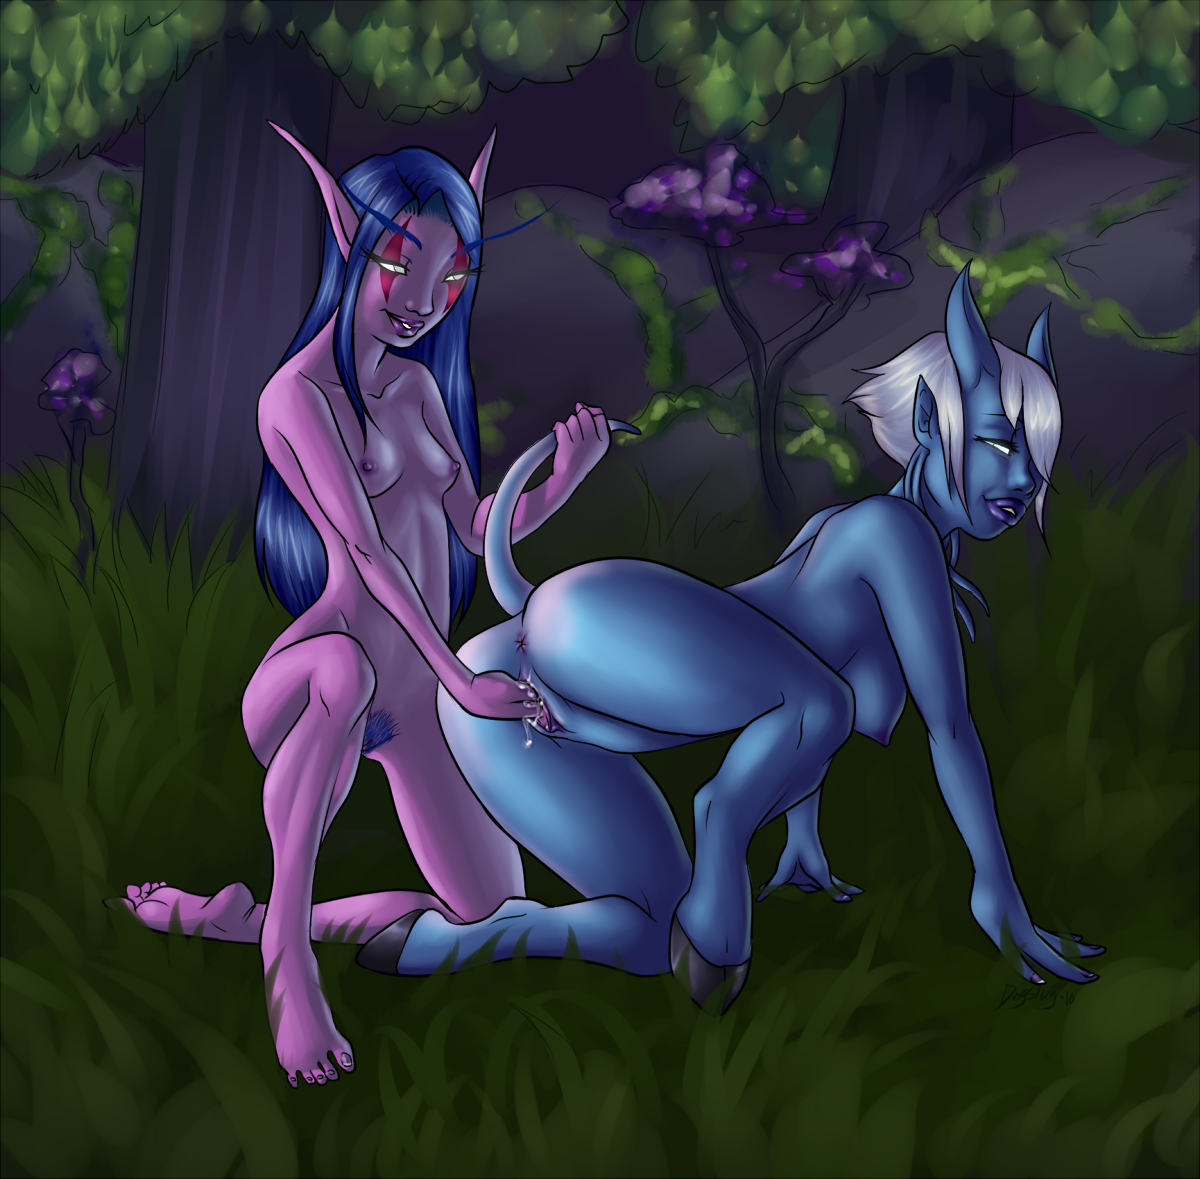 World of warcraft lesbian draenei exposed picture